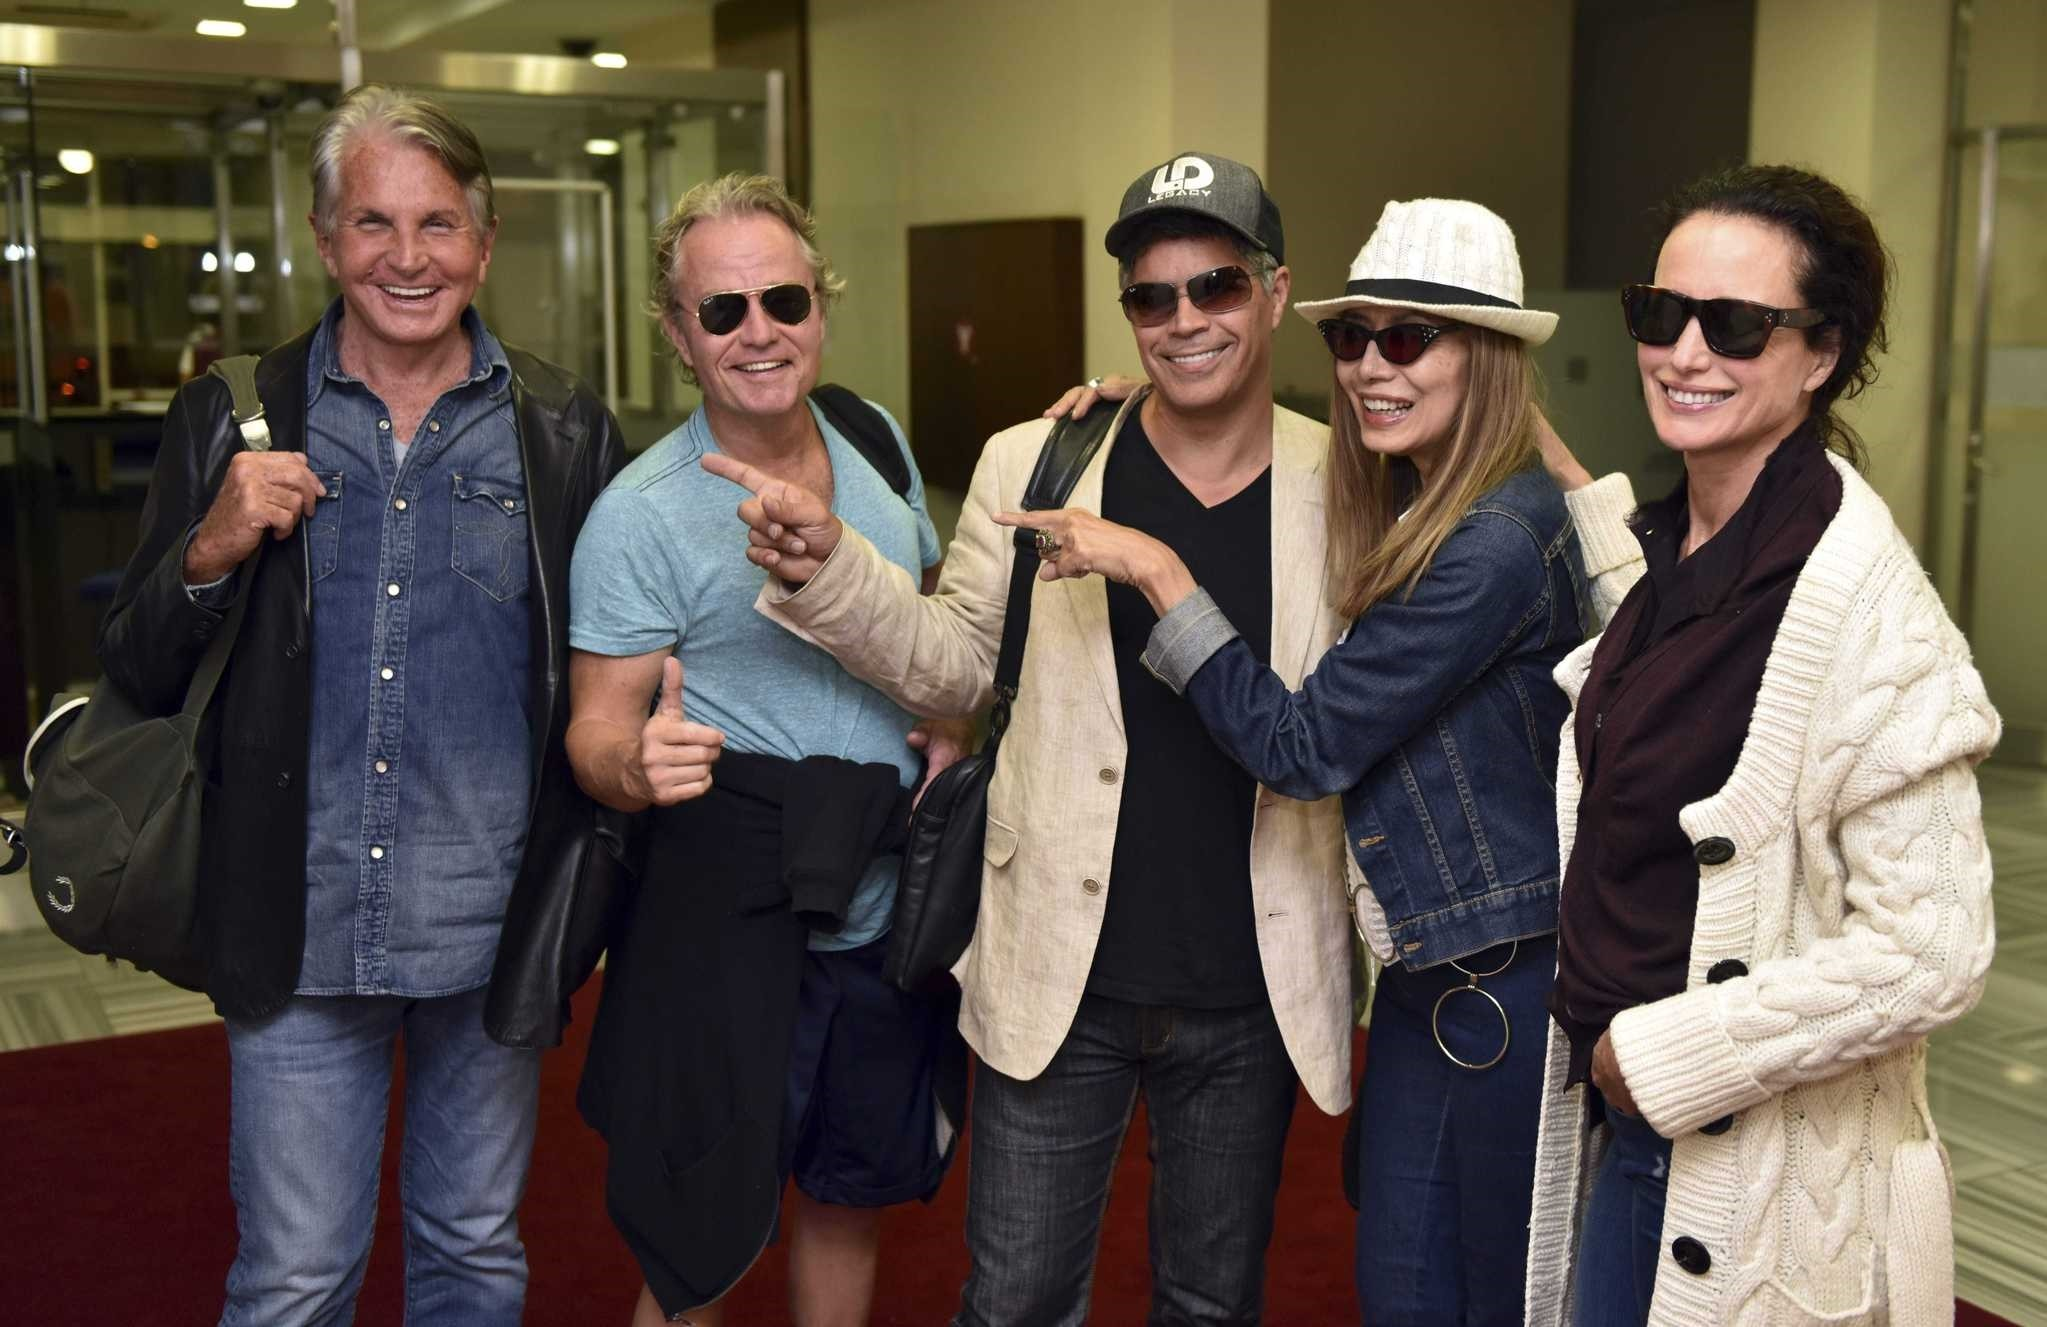 From left to right:  George Hamilton - John Savage - Esai Morales - Maria Cucinotta - Andie Macdowell